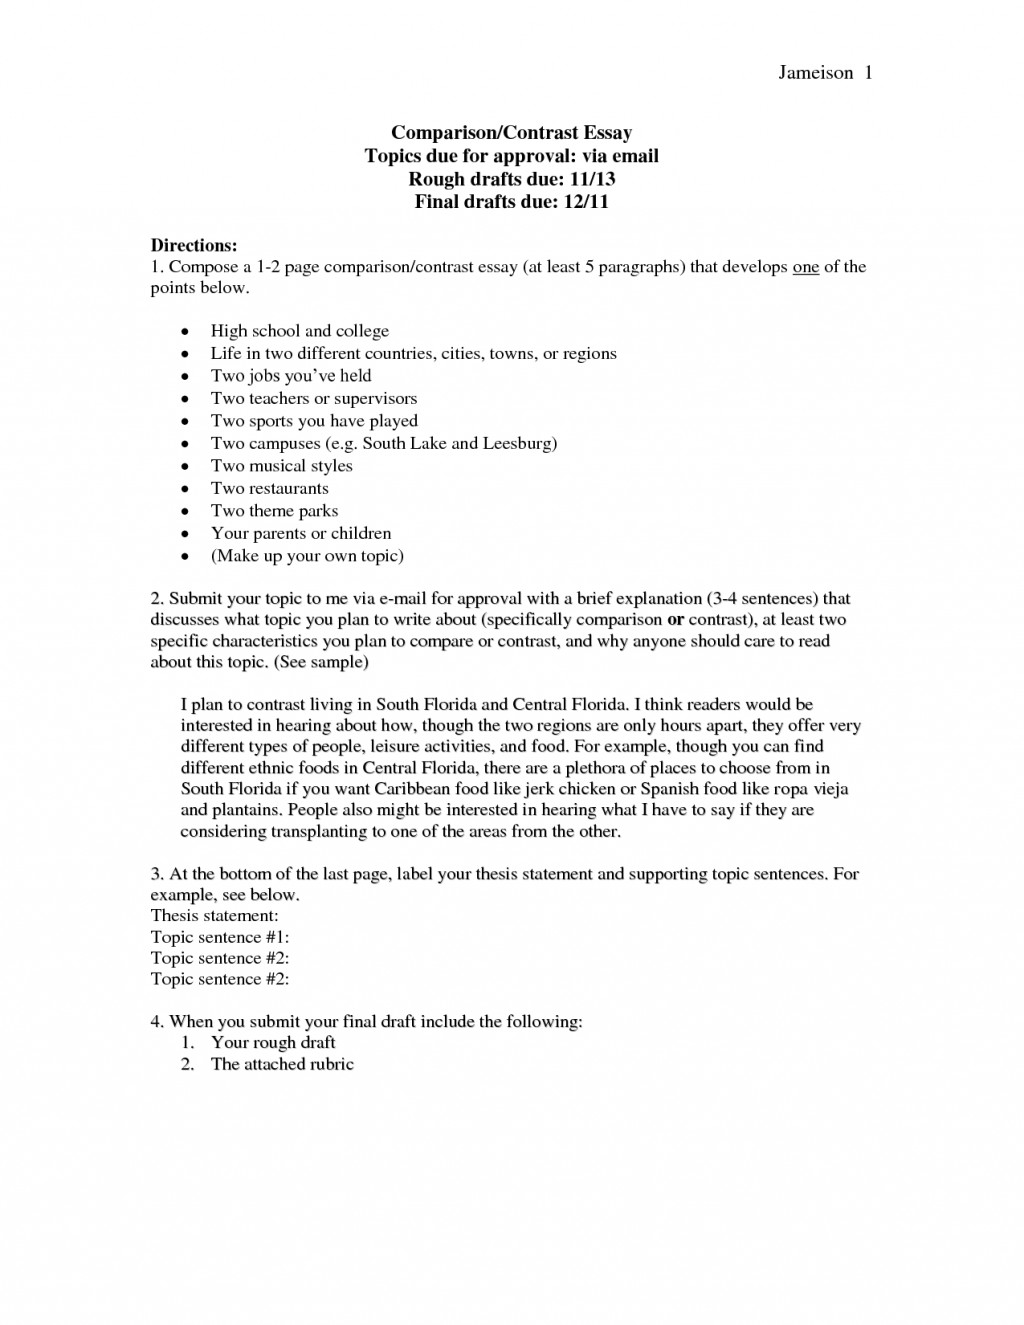 010 Essay Examples Forege Essays Format Of Compare Contrast High School Vs And Outlineege 4 3rd Grade 4th 6th Pdf Block Middle Food 5th Example Phenomenal College Outline For Students Introduction Paragraph Large